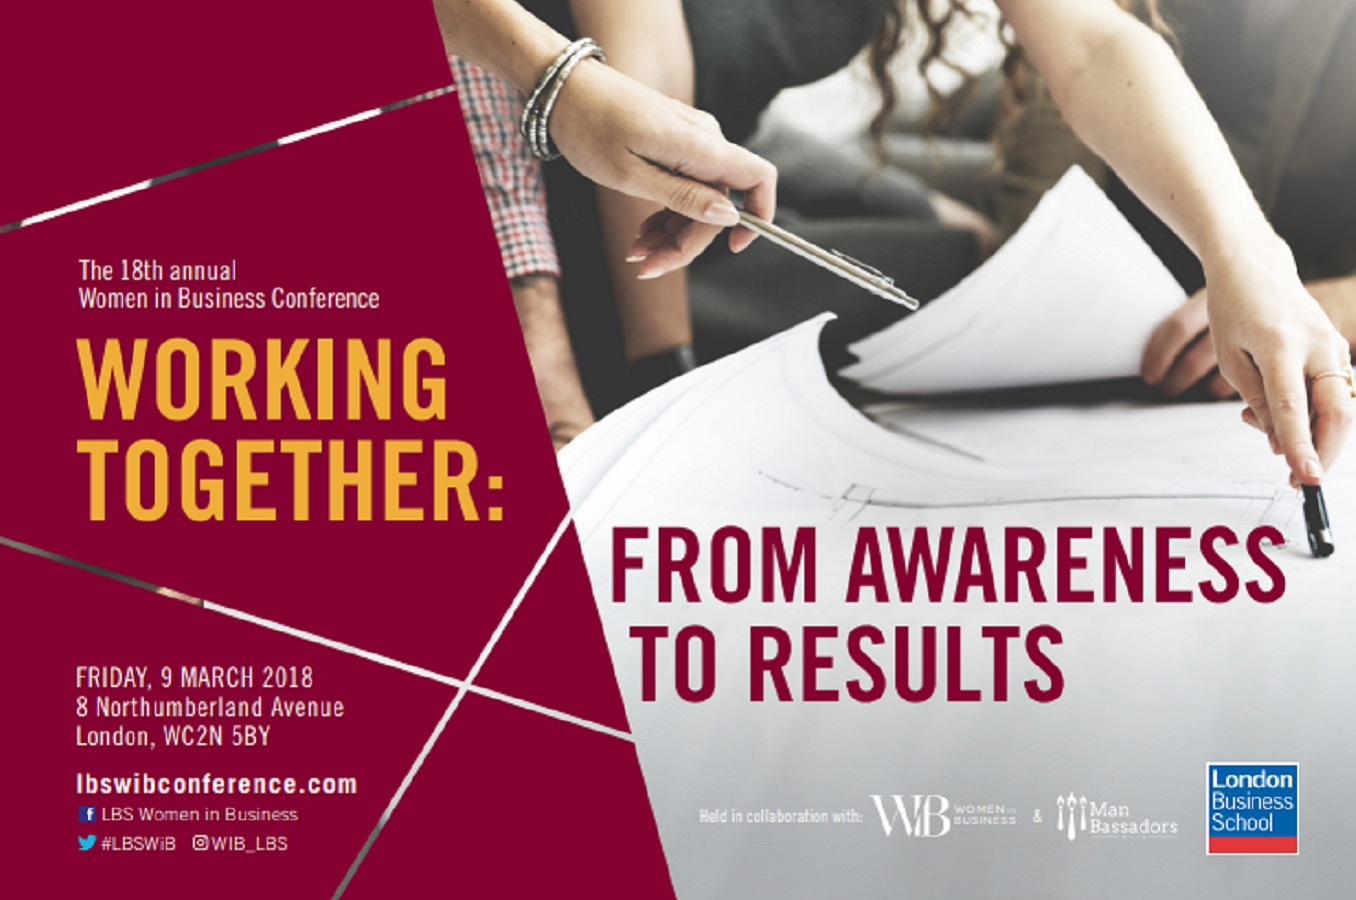 Career Progression: Kath Sloggett featured at London Business School Women In Business Conference